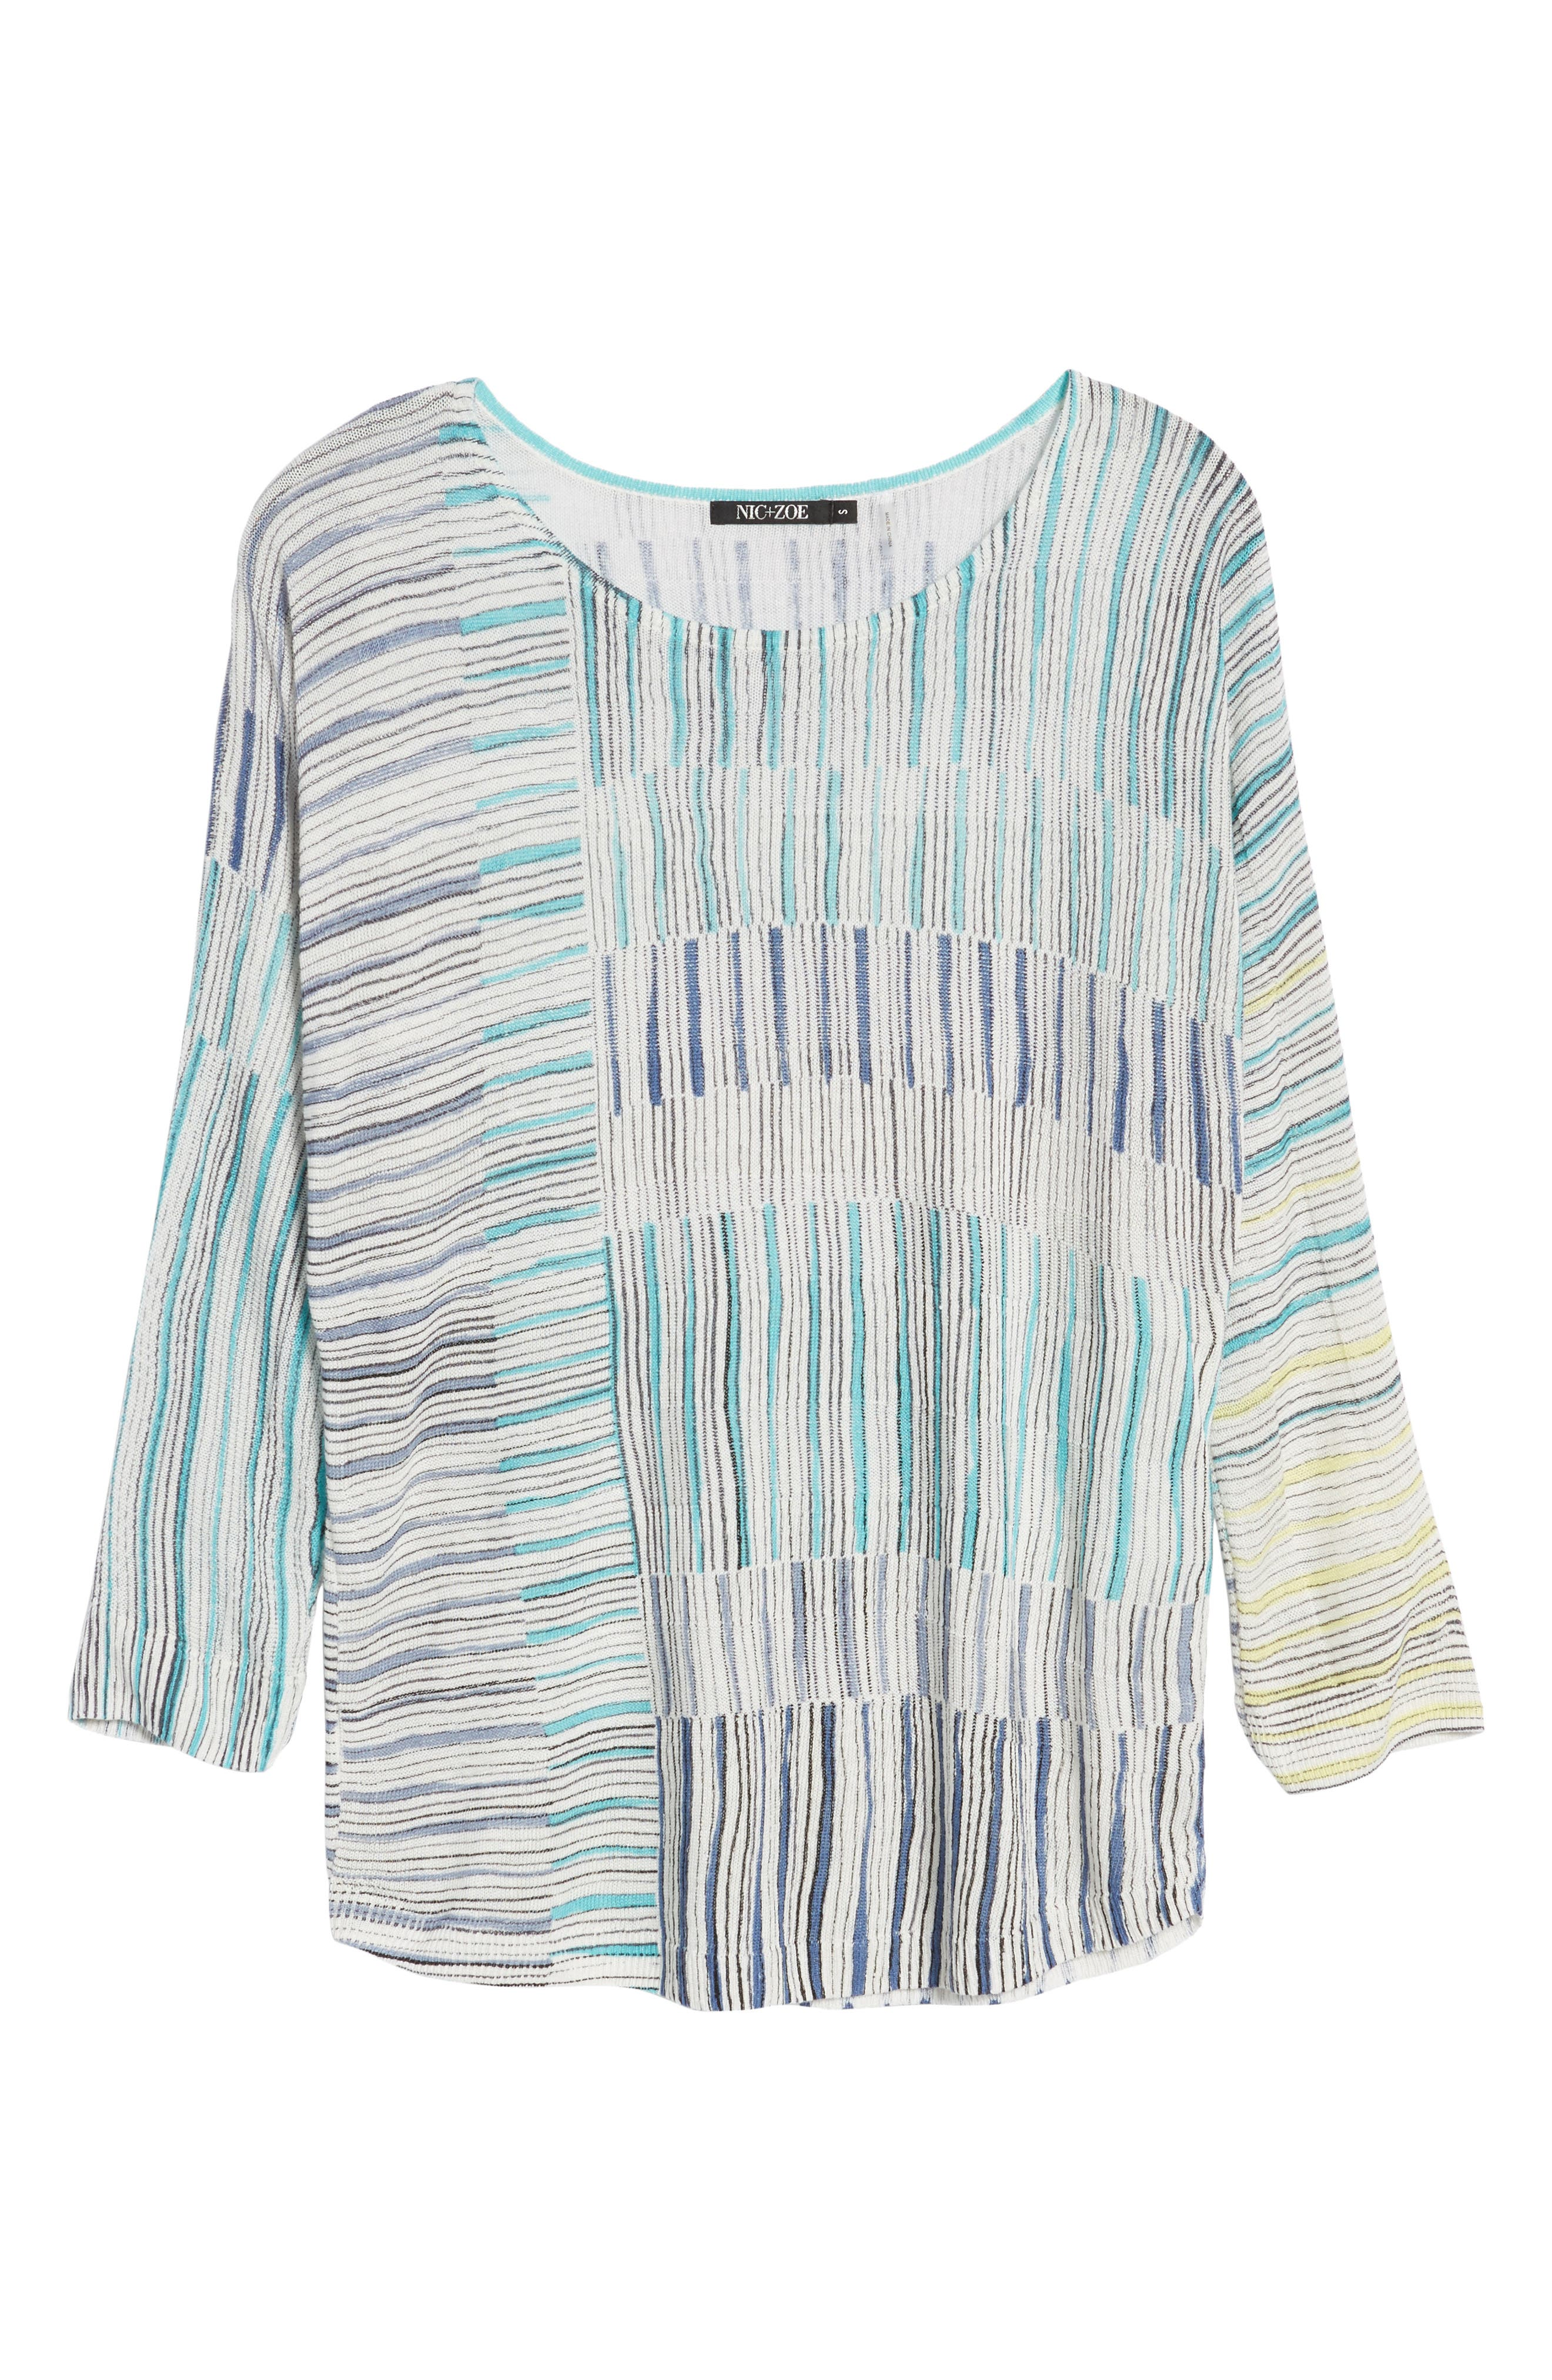 Sea Wall Stripe Top,                             Alternate thumbnail 6, color,                             Multi